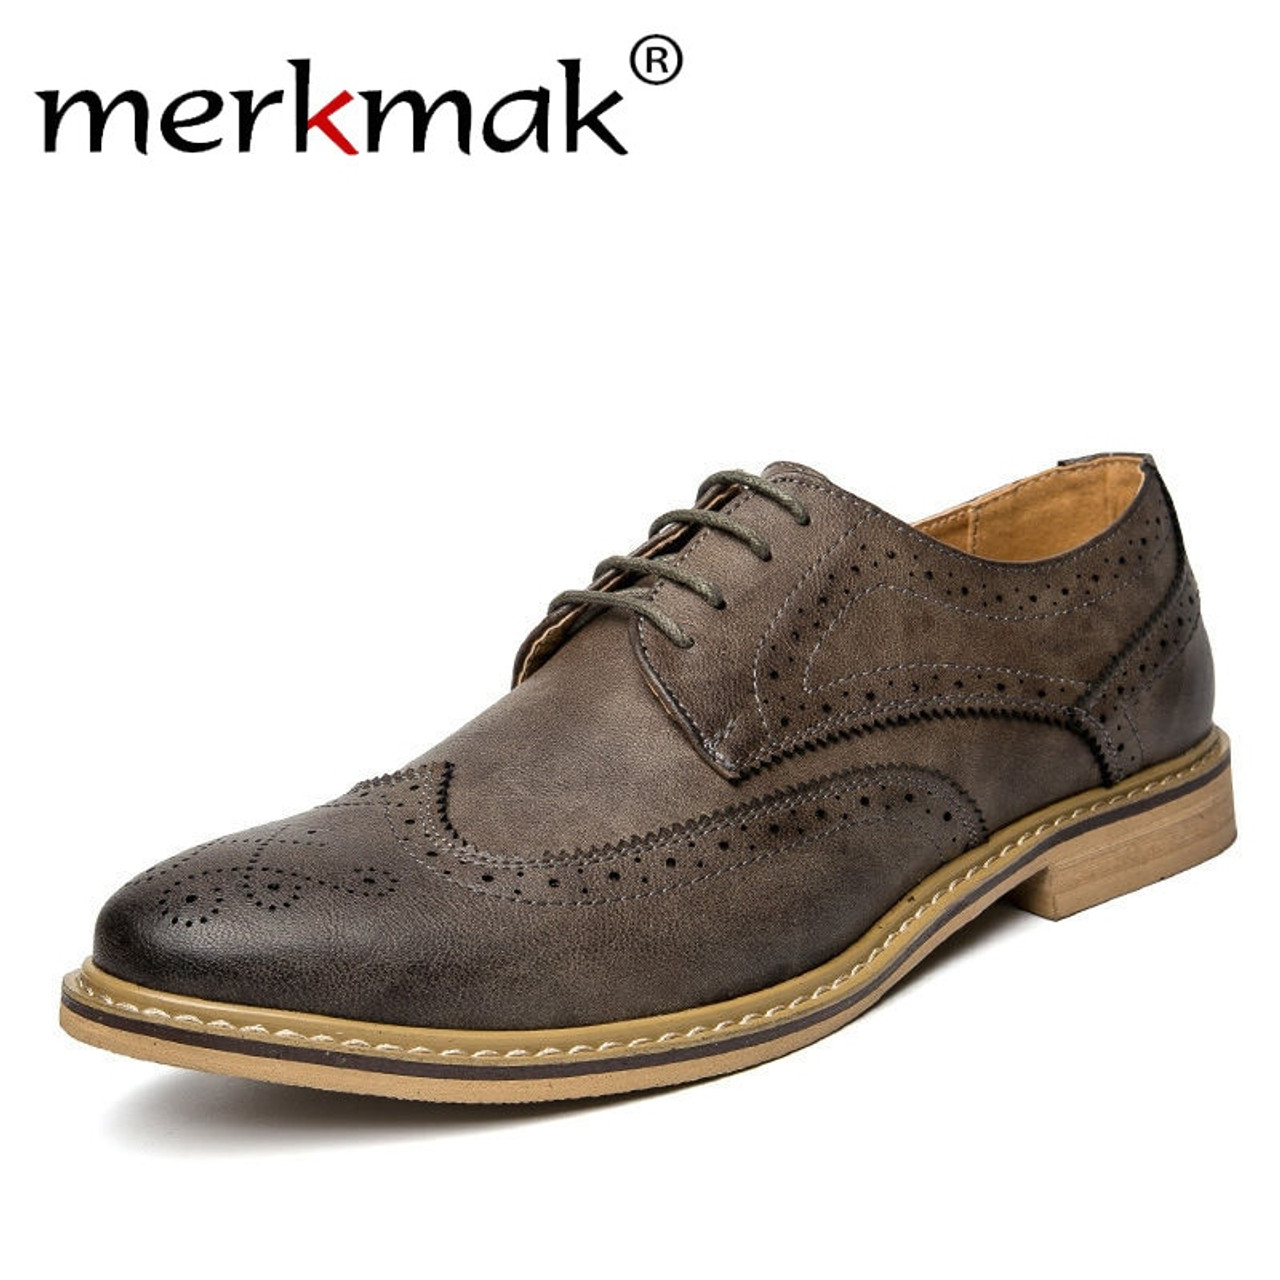 b096dba042 Merkmak New 2018 Luxury Leather Brogue Mens Flats Shoes Casual British  Style Men Oxfords Fashion Brand Dress Shoes For Men